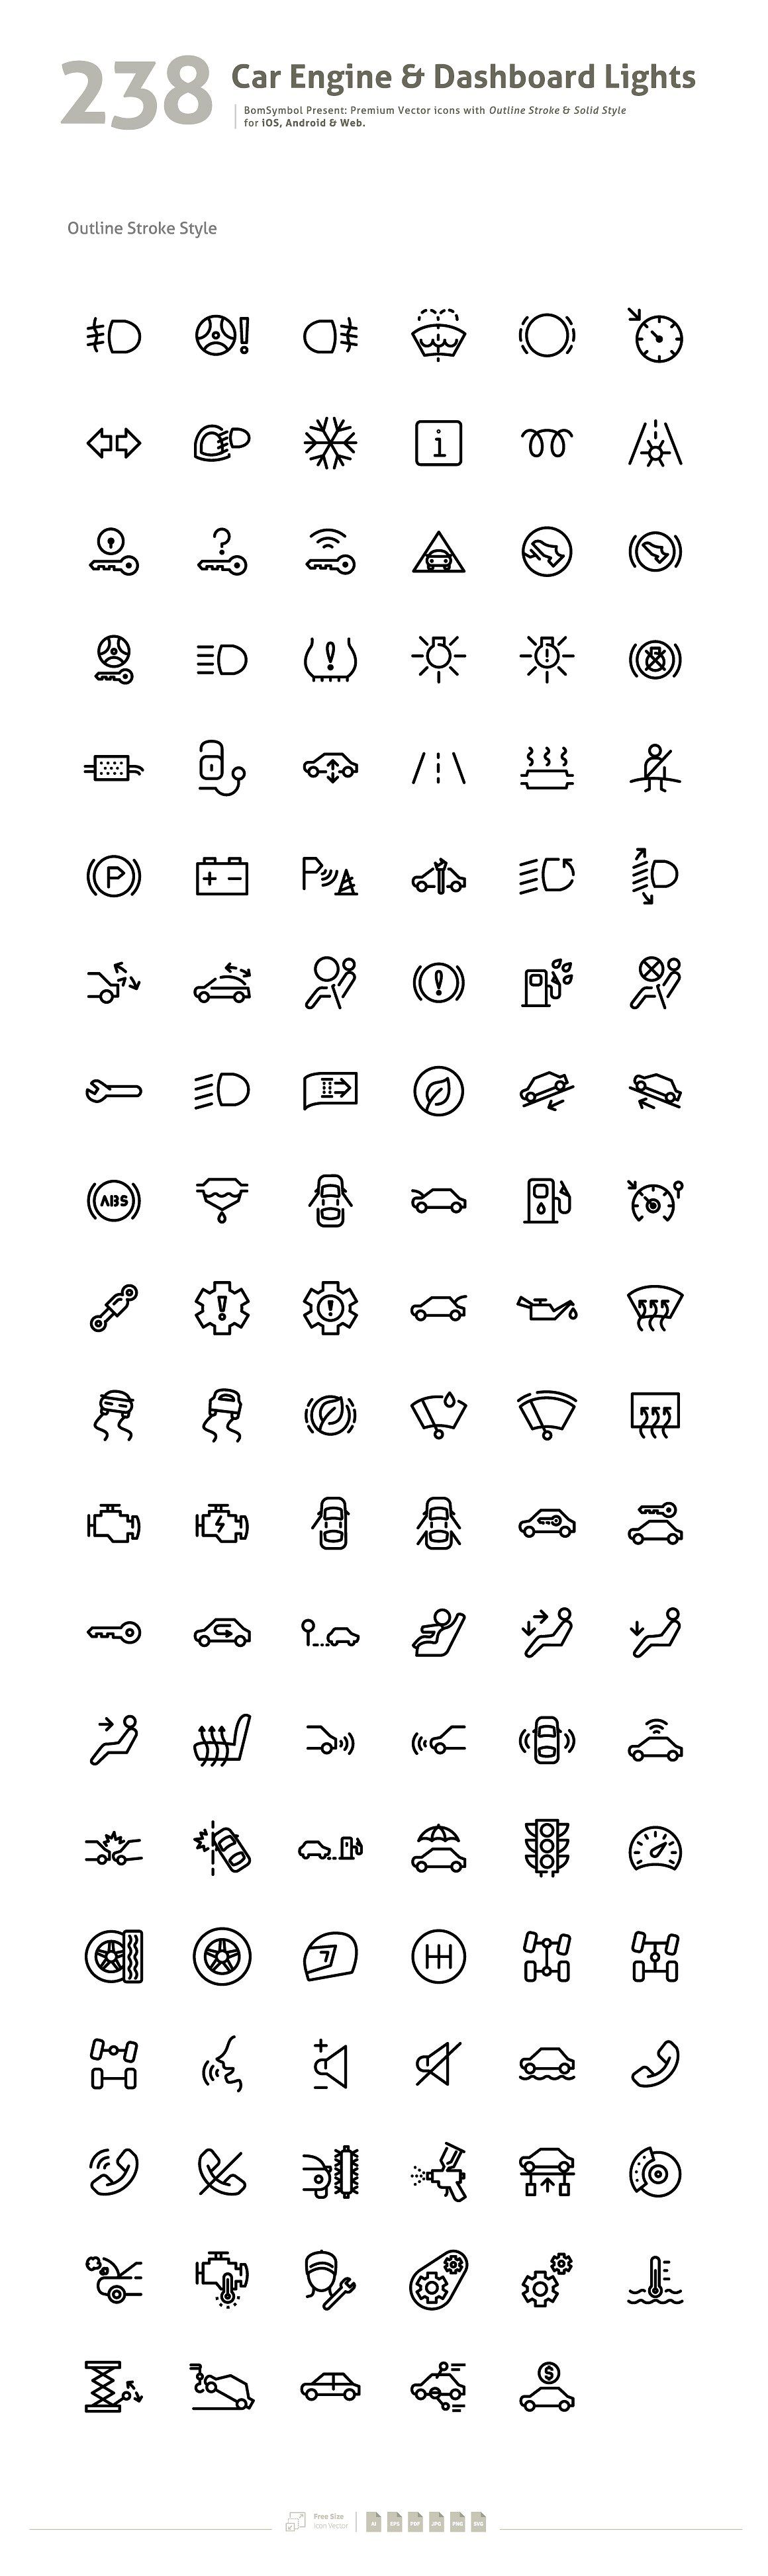 Car Engine Dashboard Lights Symbol Icons 2 Icon Set